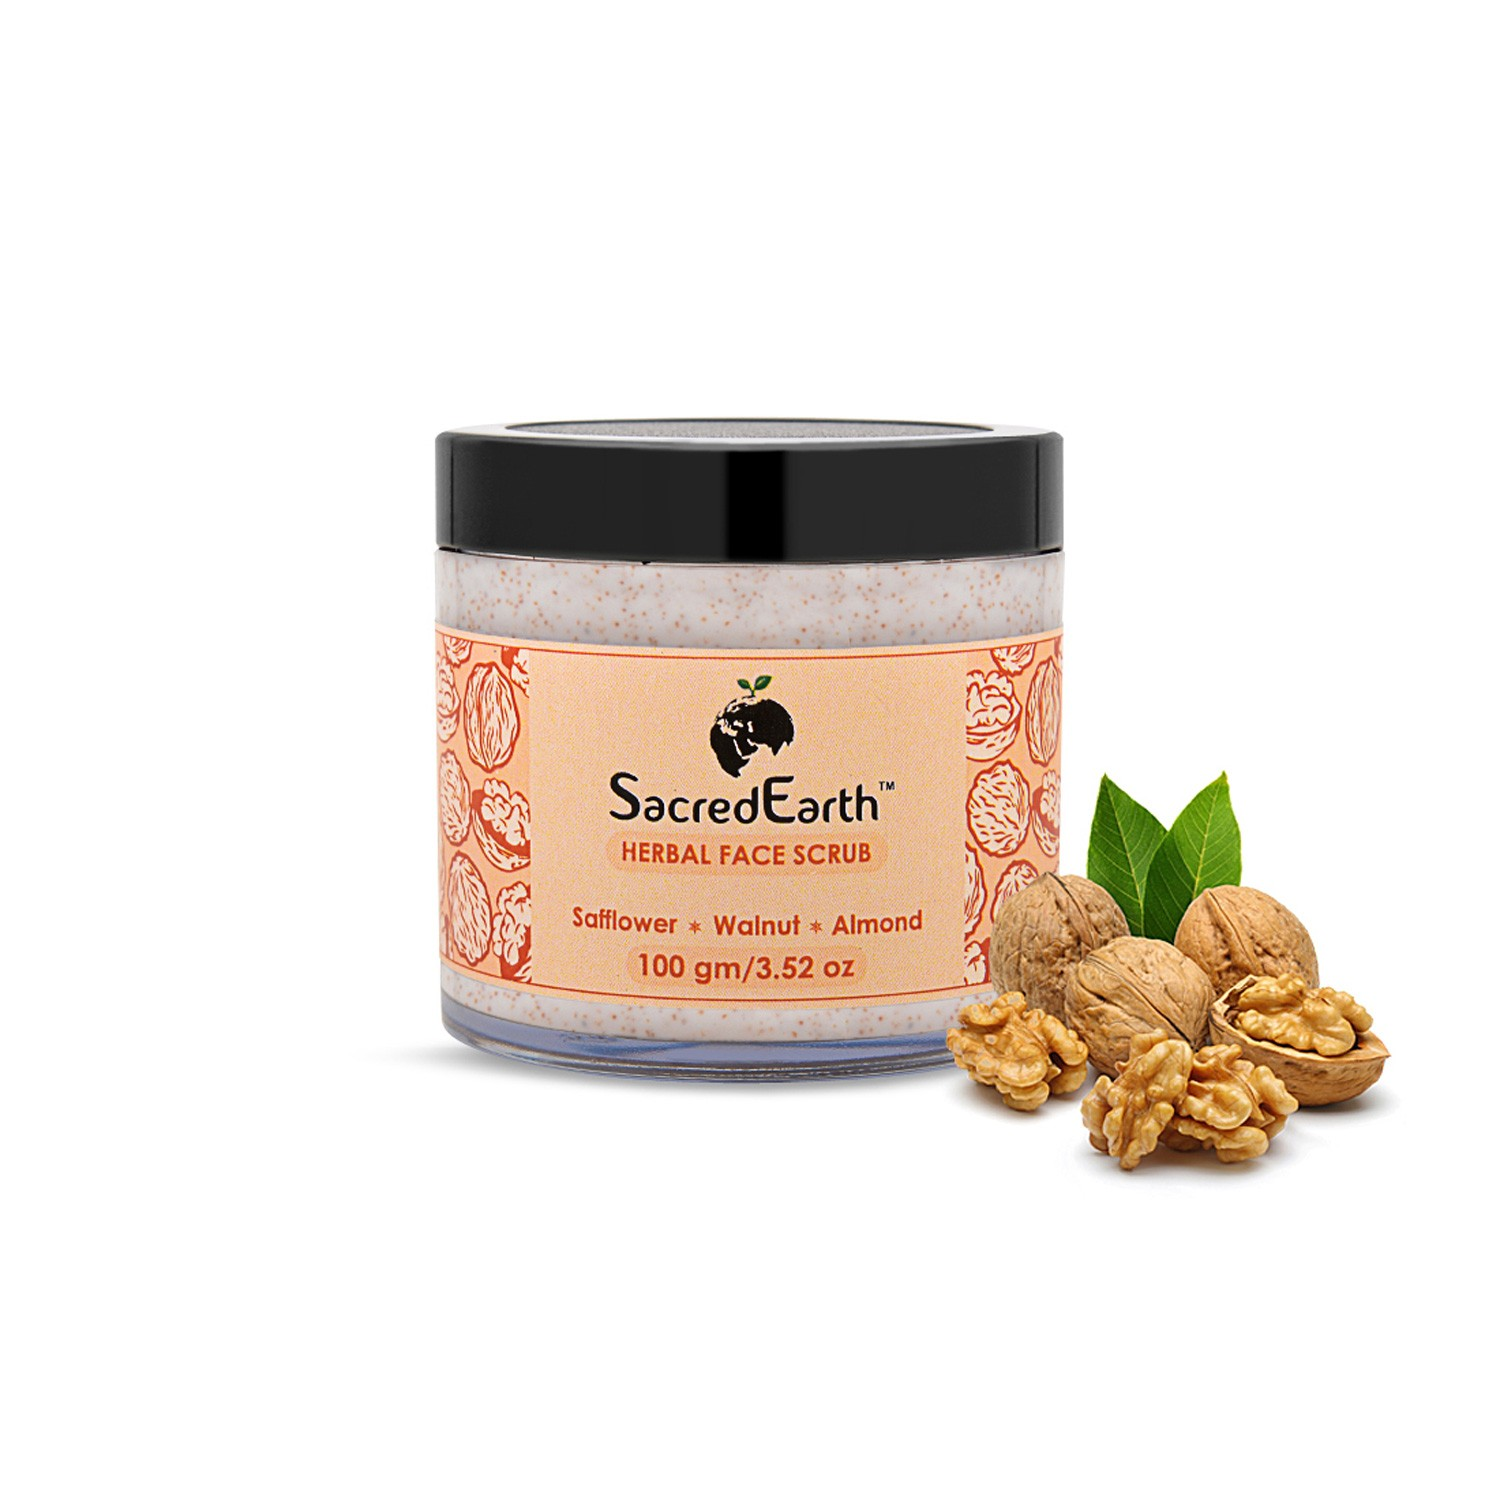 Herbal Face Scrub Dead Skin Remover & Revitalises Skin